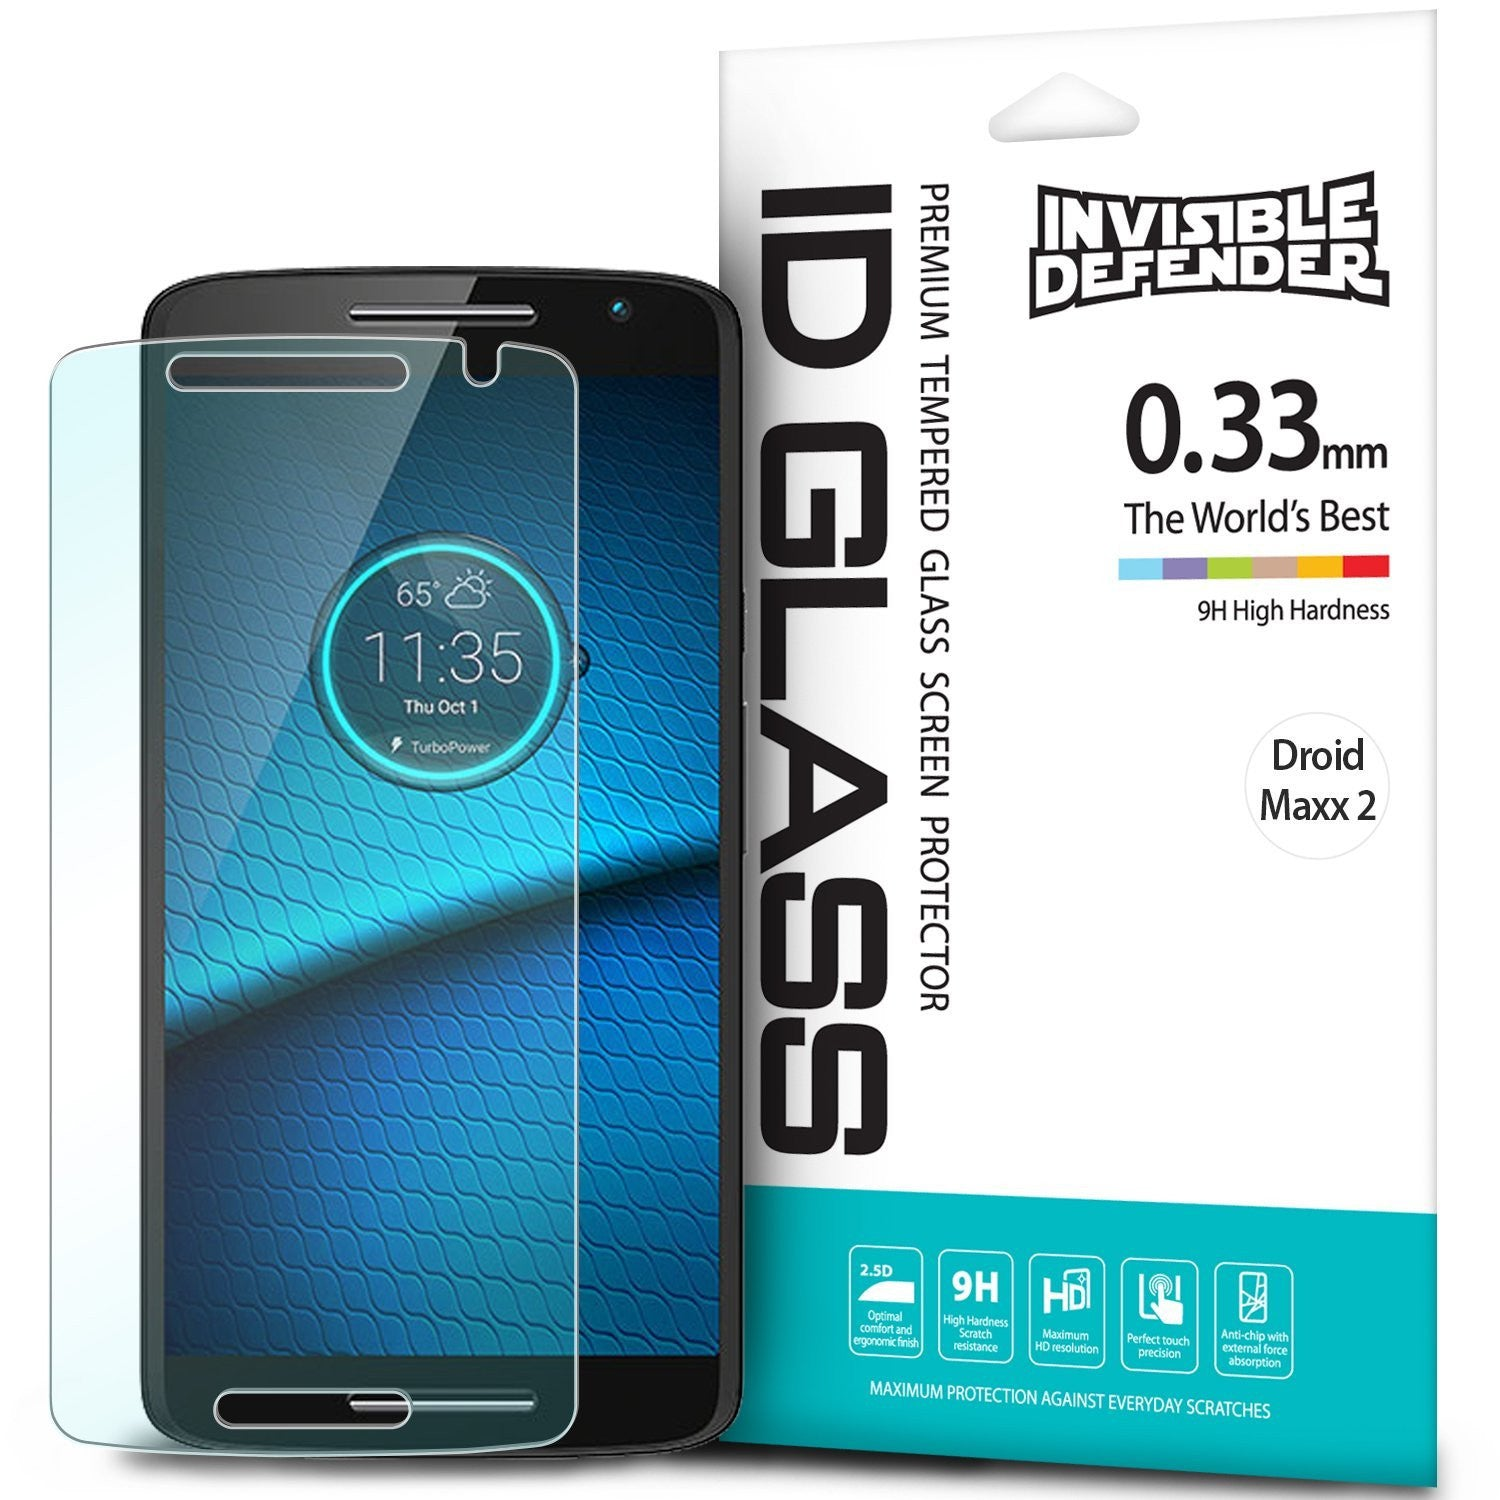 droid maxx 2 invisible defender tempered glass screen protector